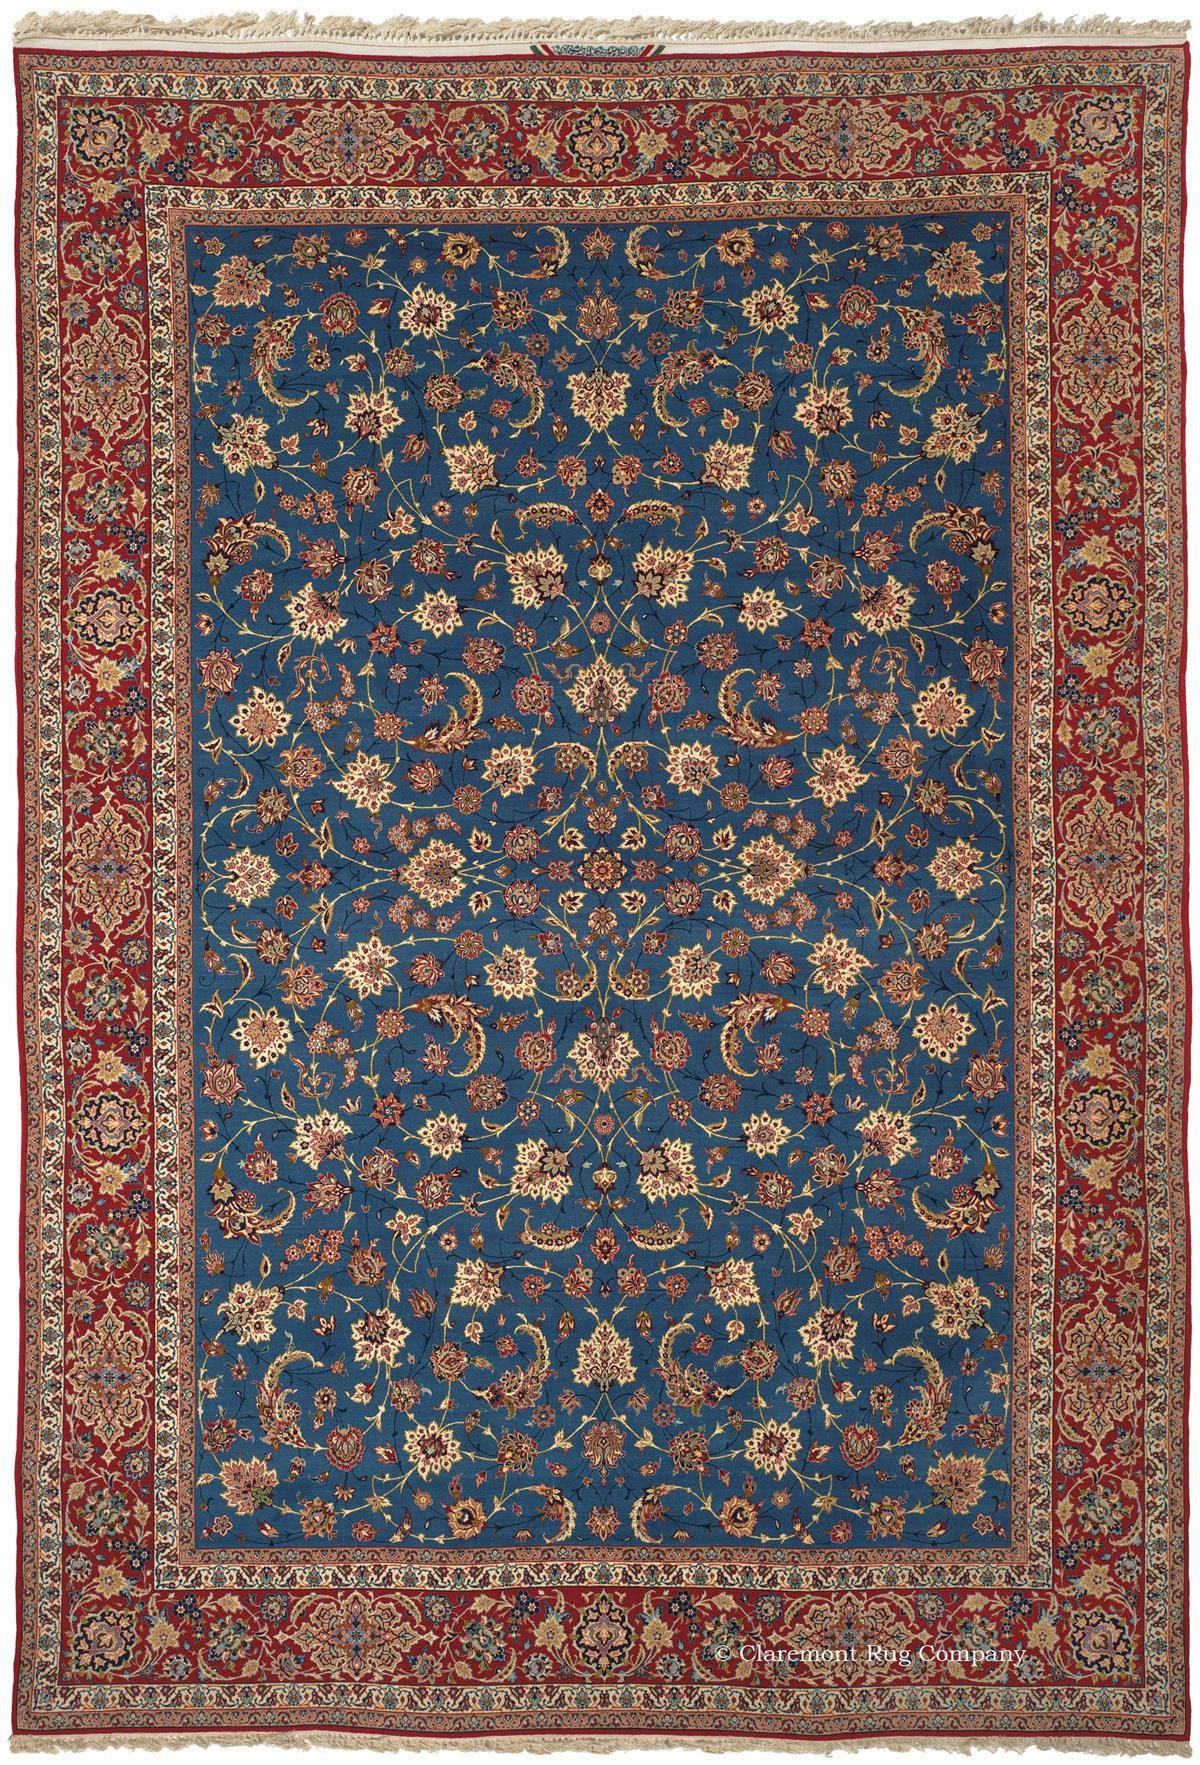 Isfahan Central Persian 8ft 6in X 12ft 7in Circa 1950 Persian Carpet Stair Runner Carpet Rugs